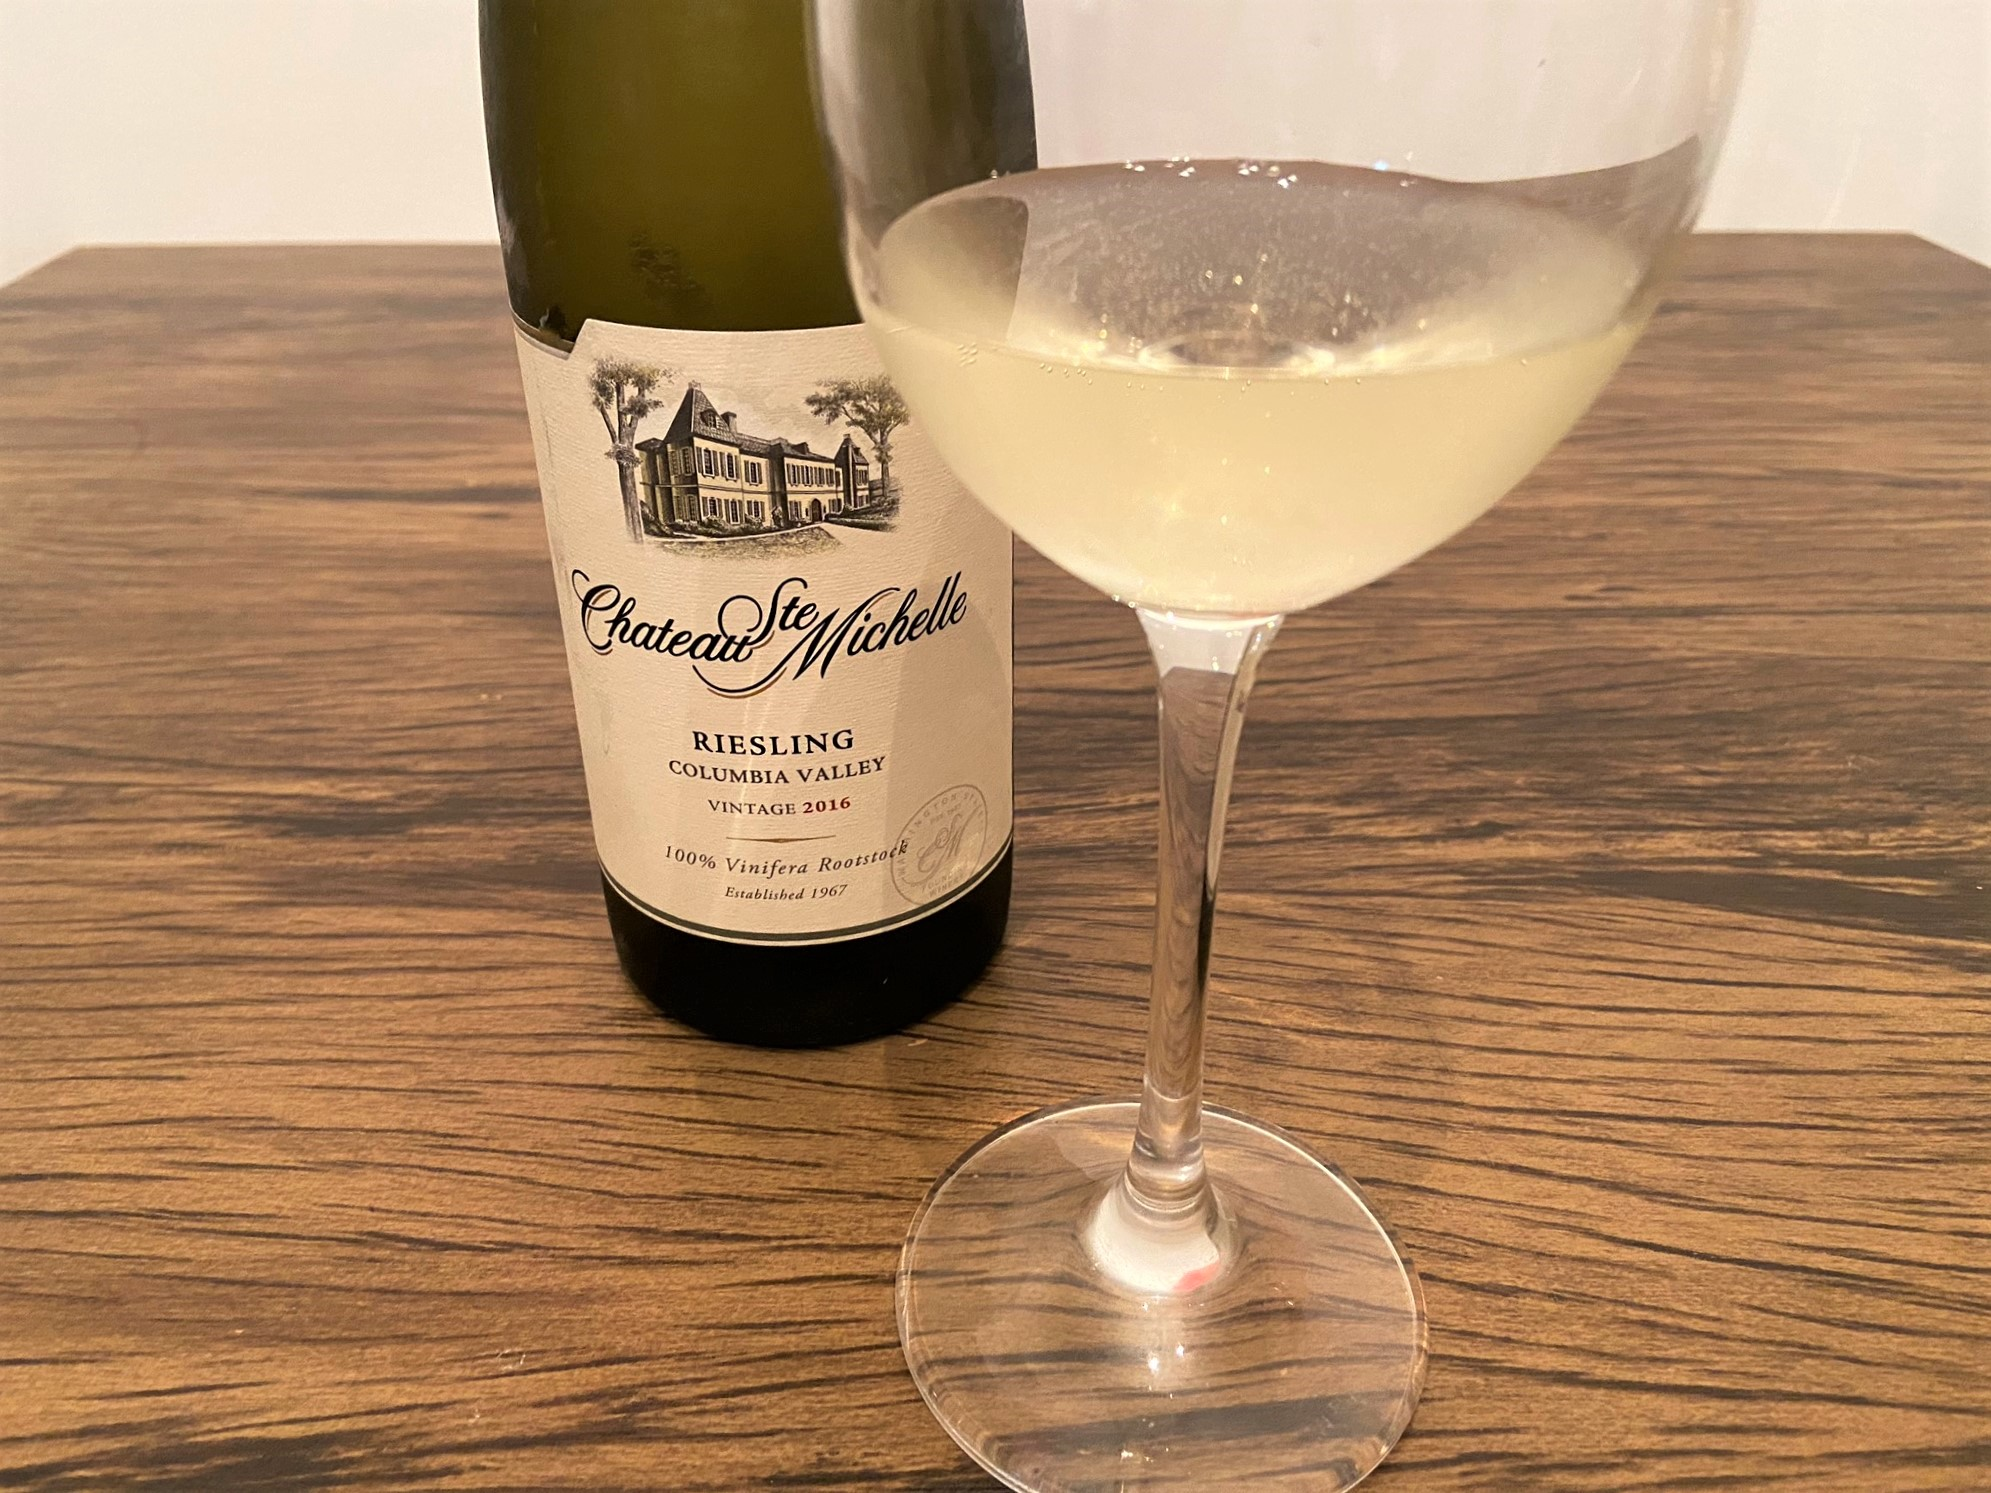 Chateau Ste Michelle Riesling Vintage